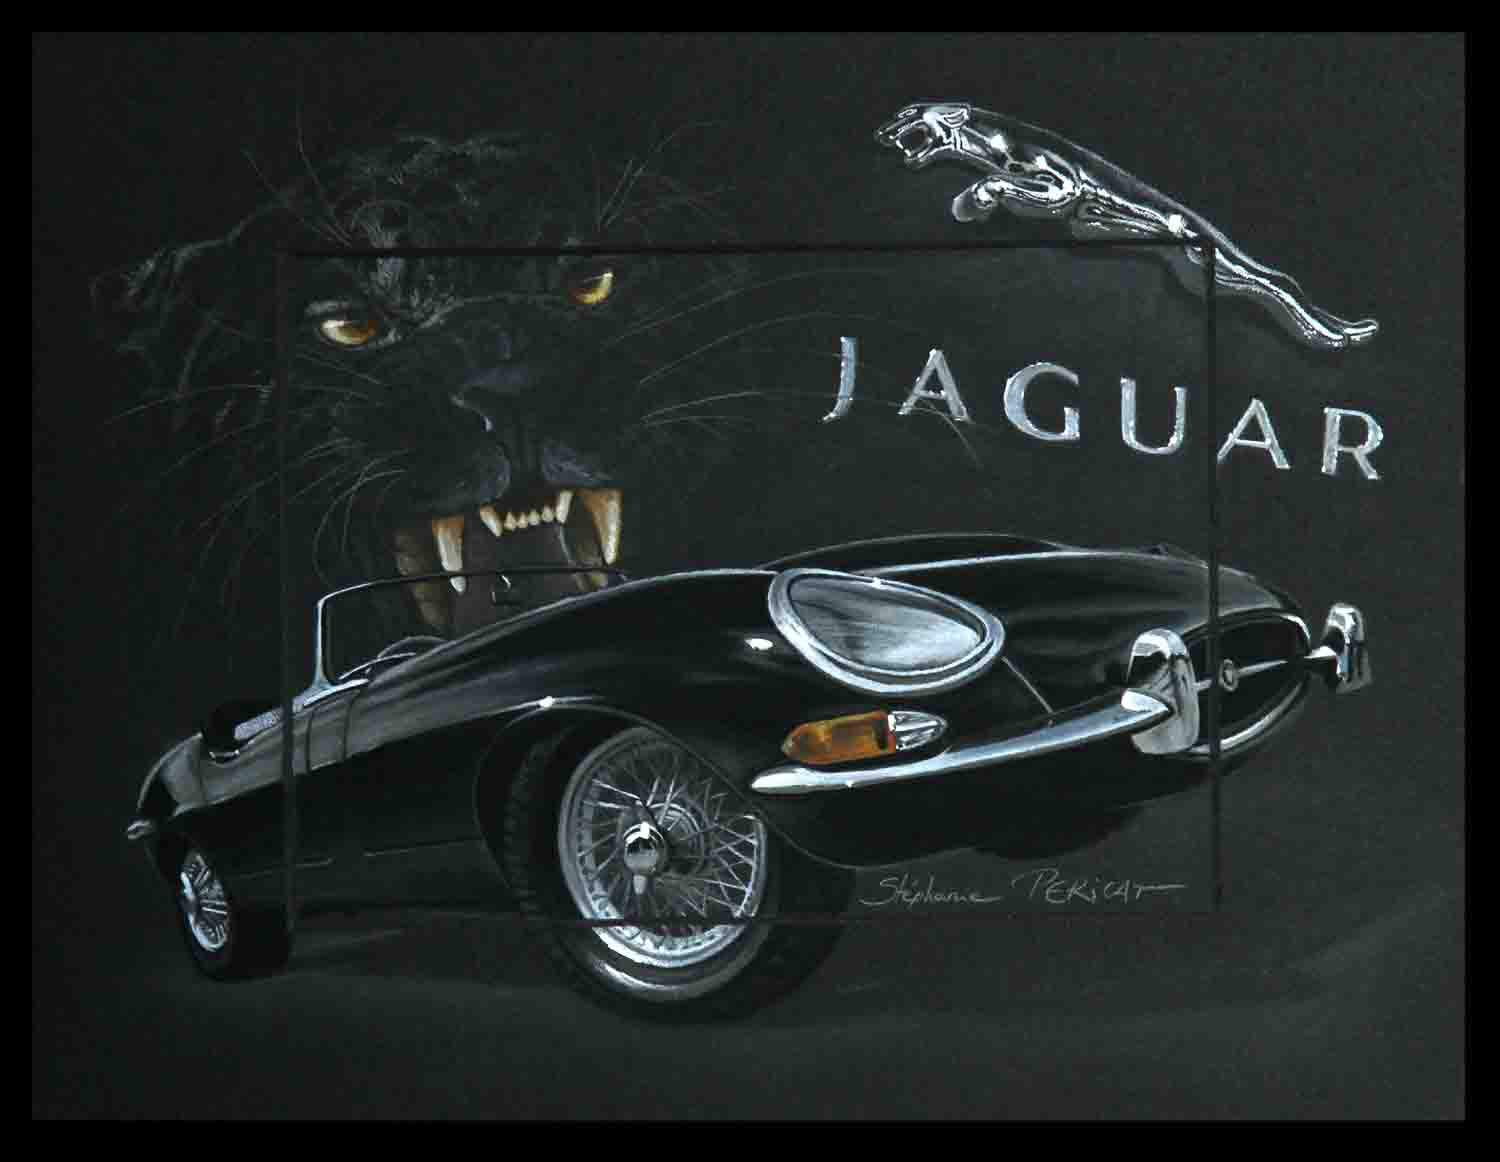 Jaguar Type E (jaguar E-type) -  24x30cm